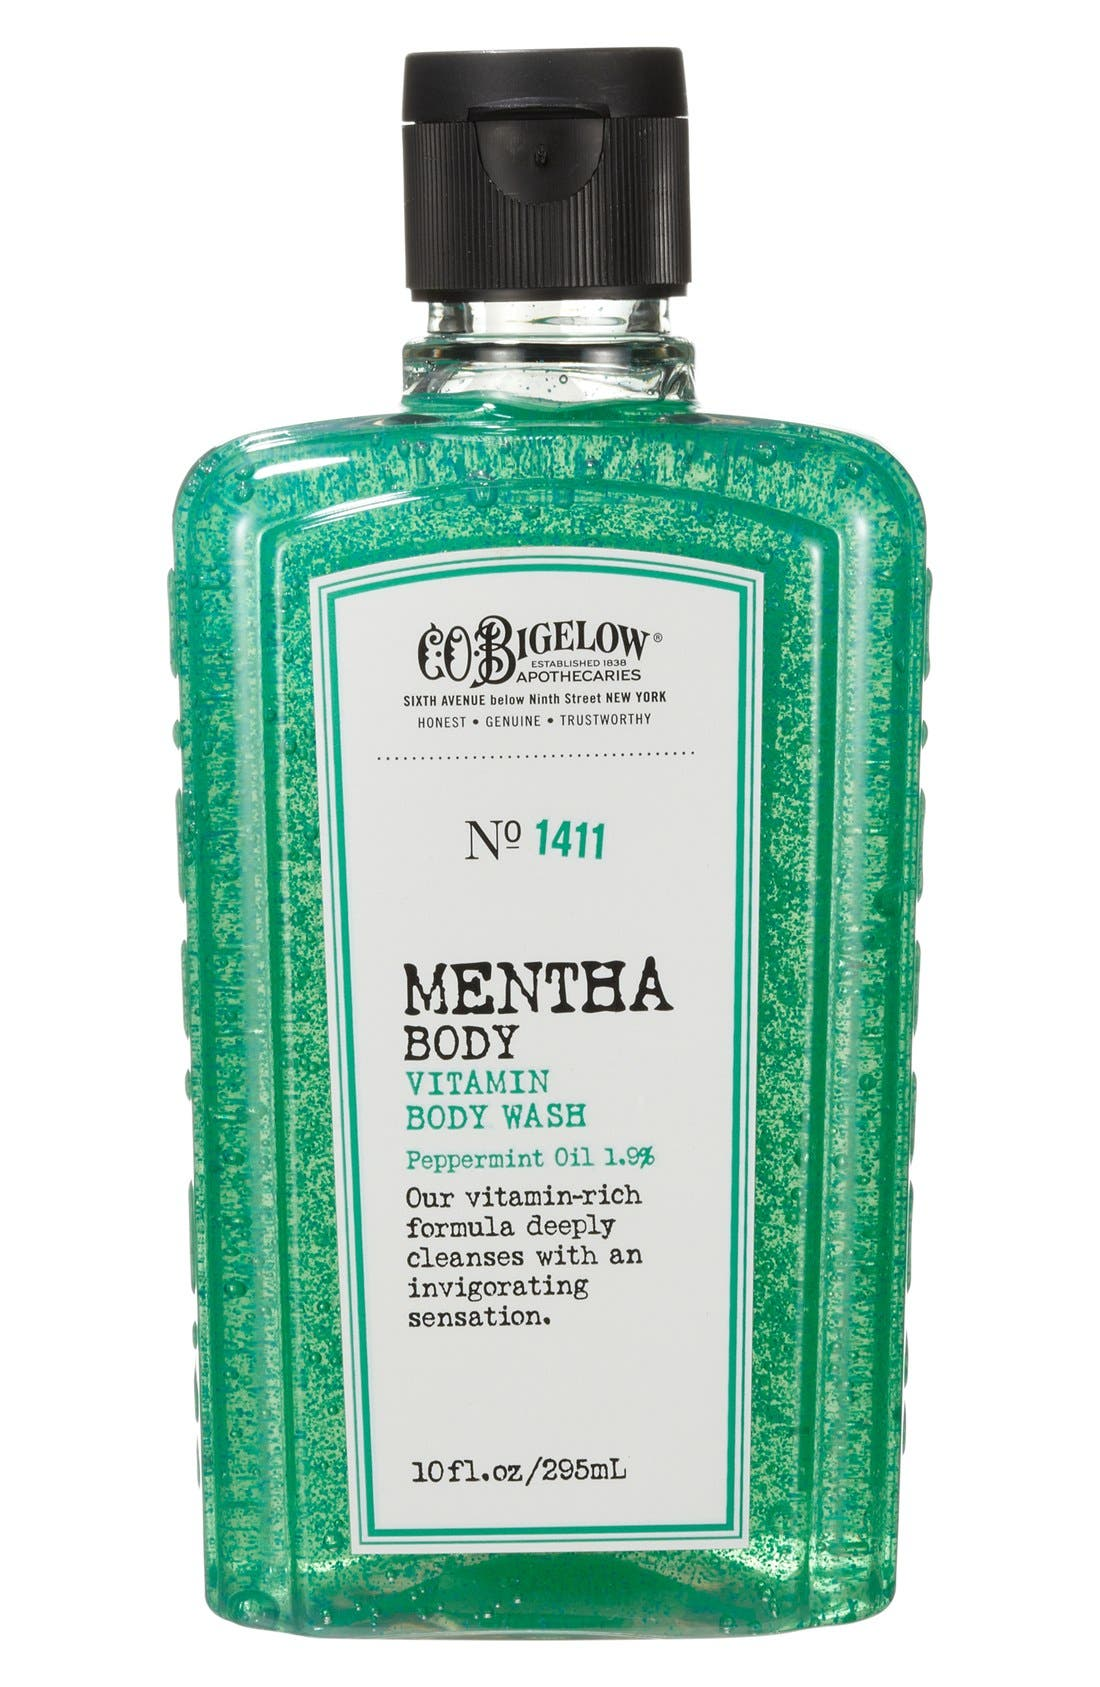 C.O. Bigelow® Mentha Body Vitamin Body Wash